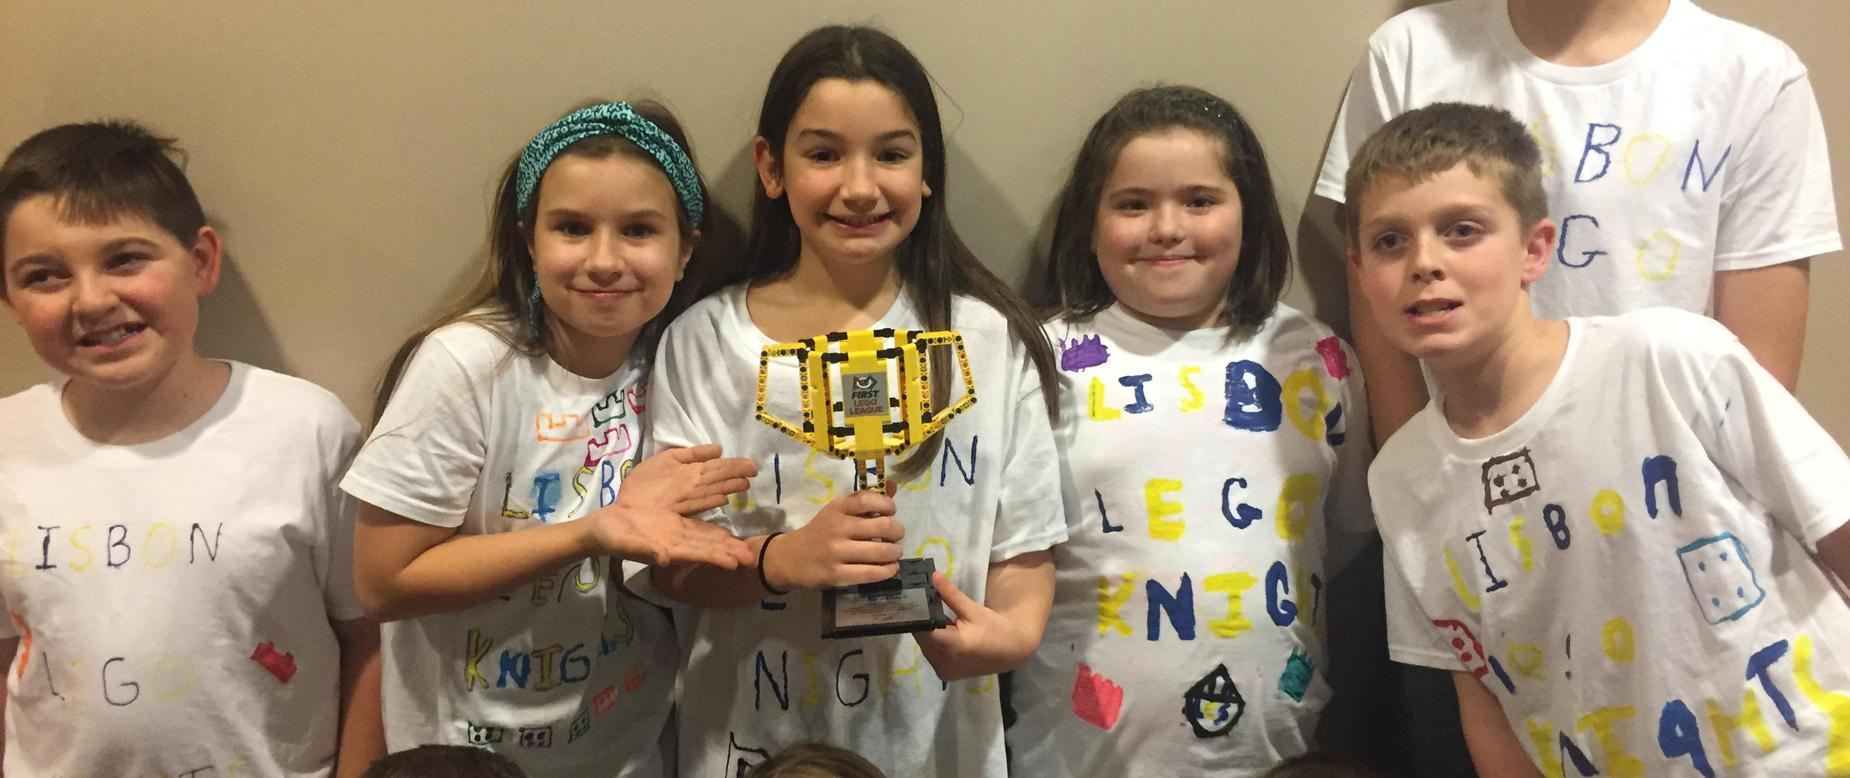 five elementary students stand together holding trophy